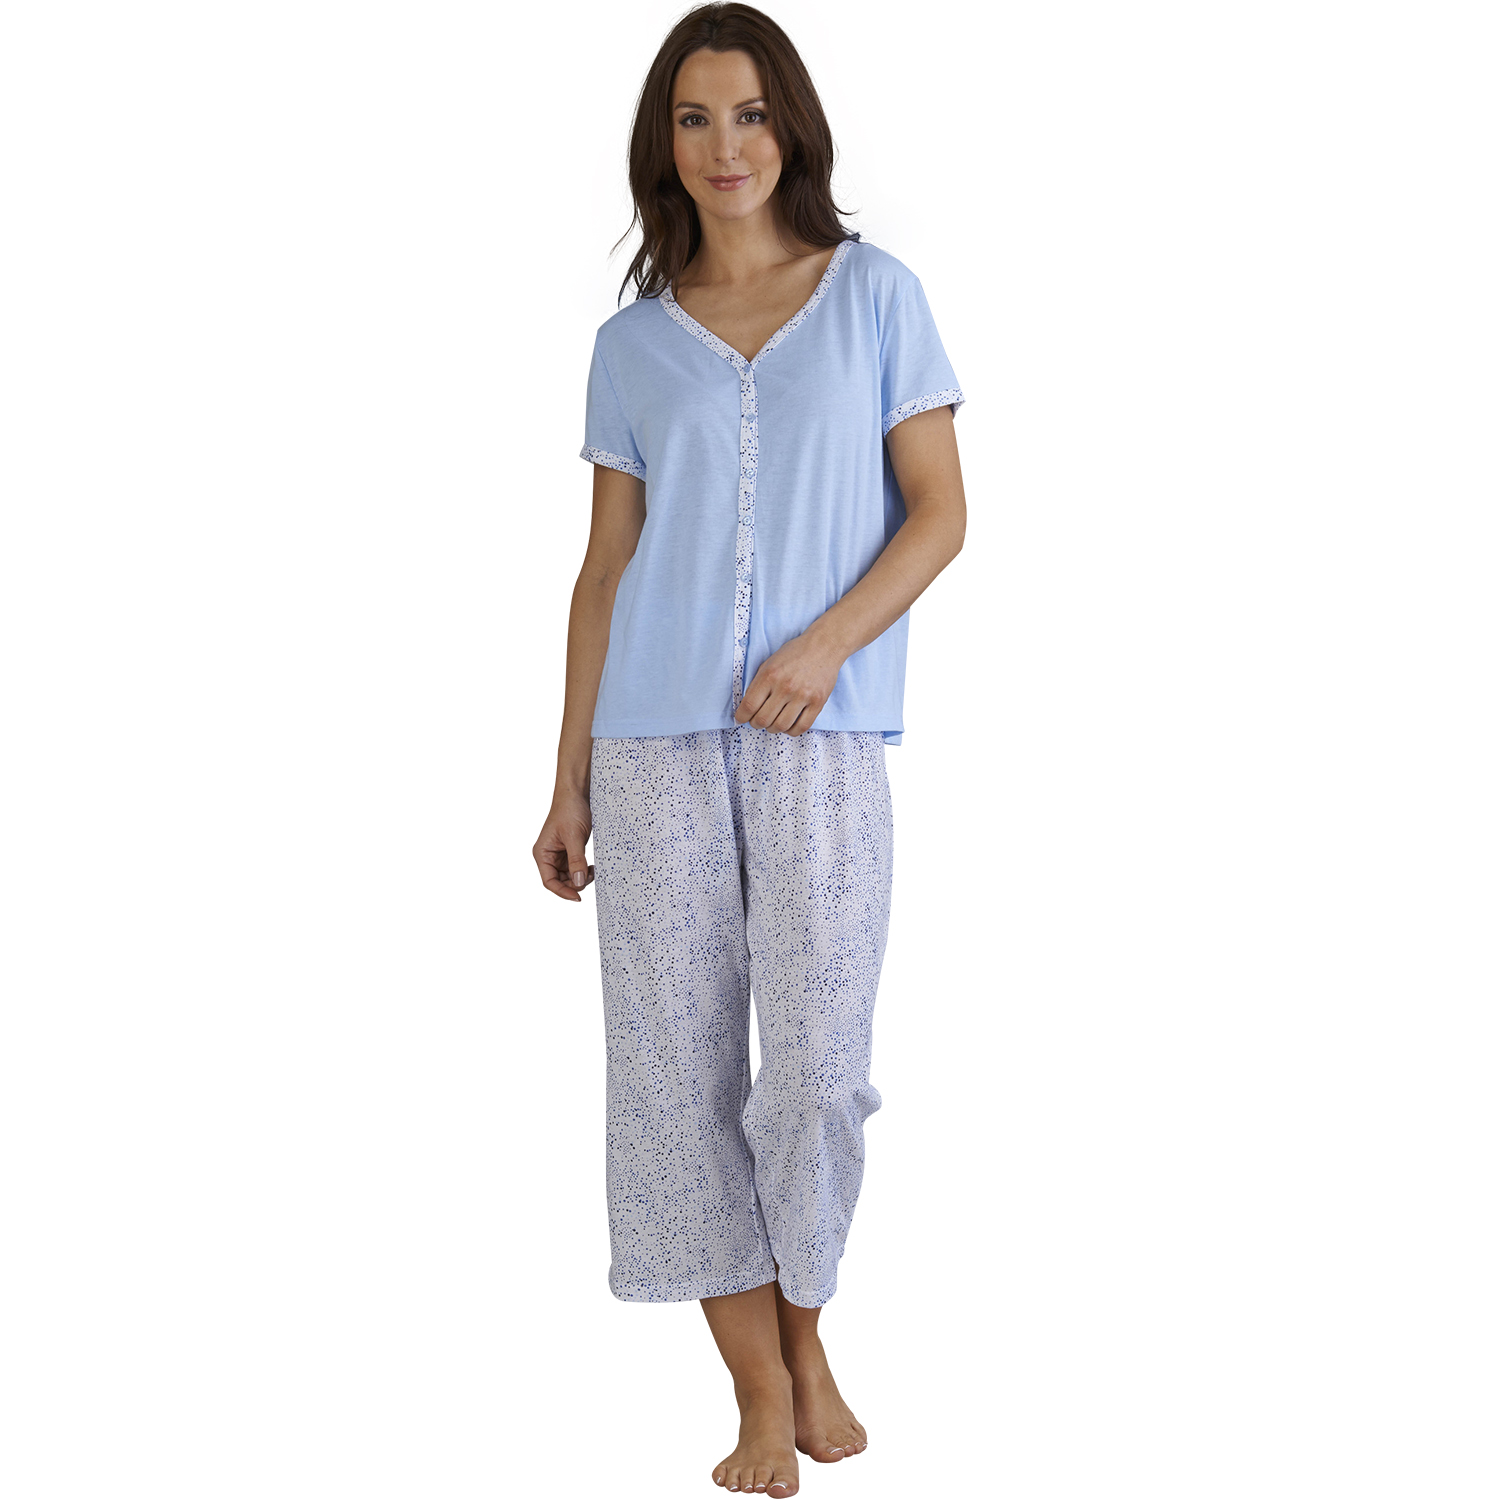 Treat yourself to some new cosy nightwear this winter. Shop the Matalan's range of women's nightwear including pyjamas, nighties & dressing gowns.